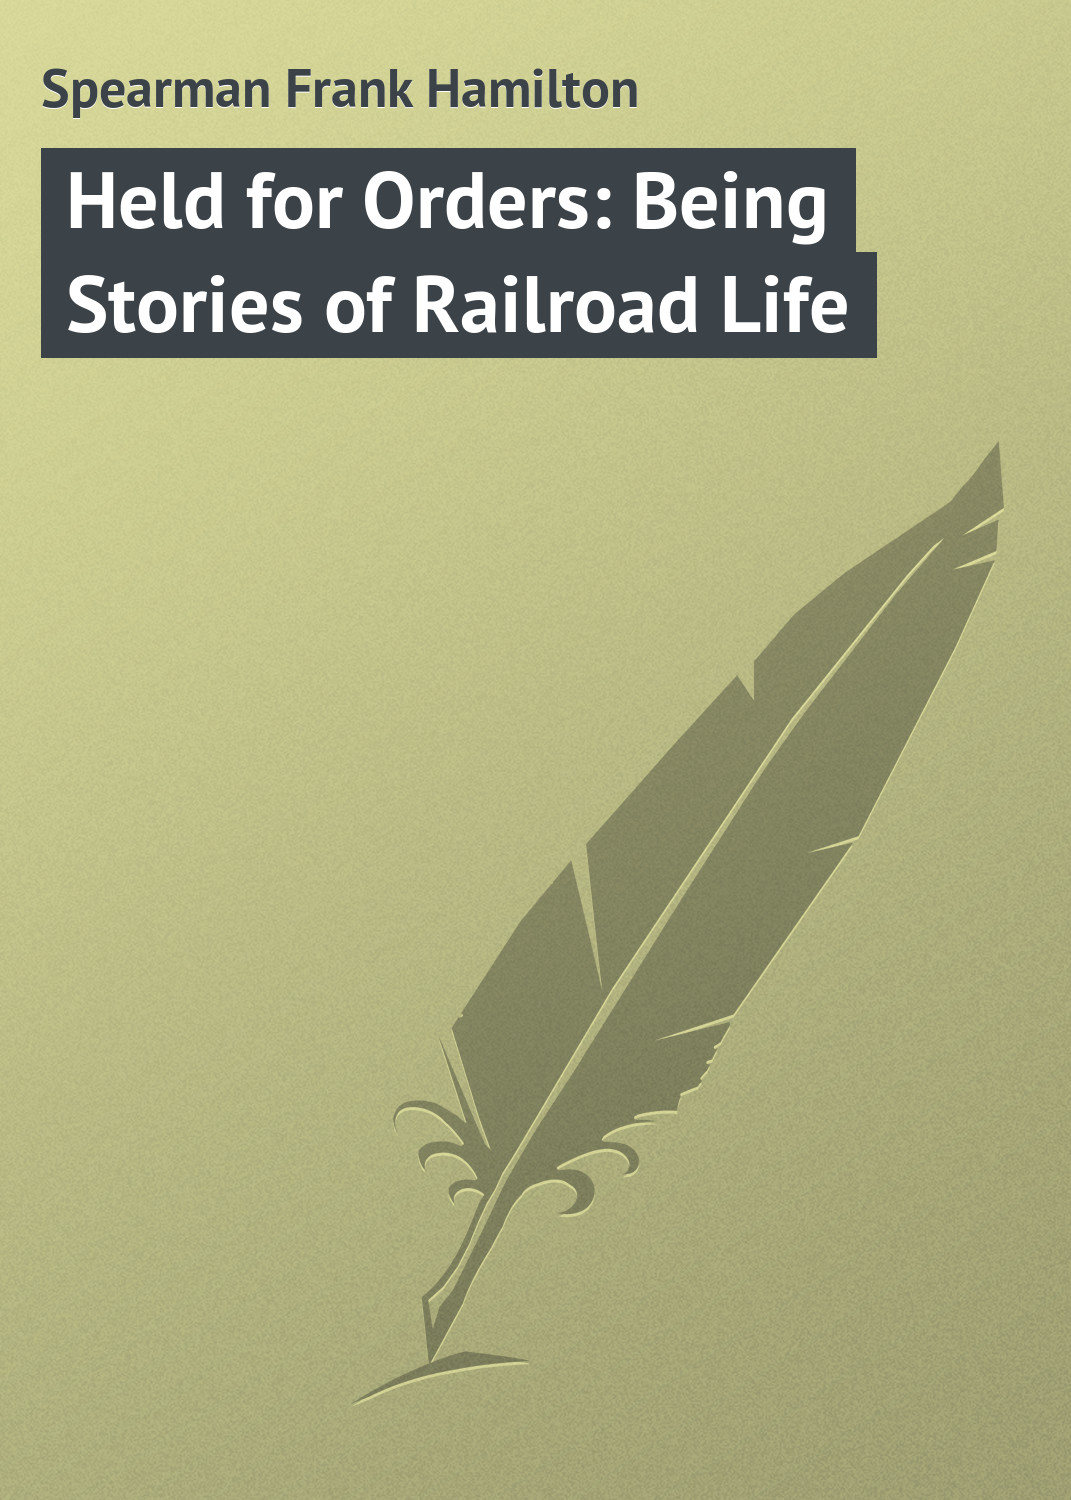 Spearman Frank Hamilton Held for Orders: Being Stories of Railroad Life international orders